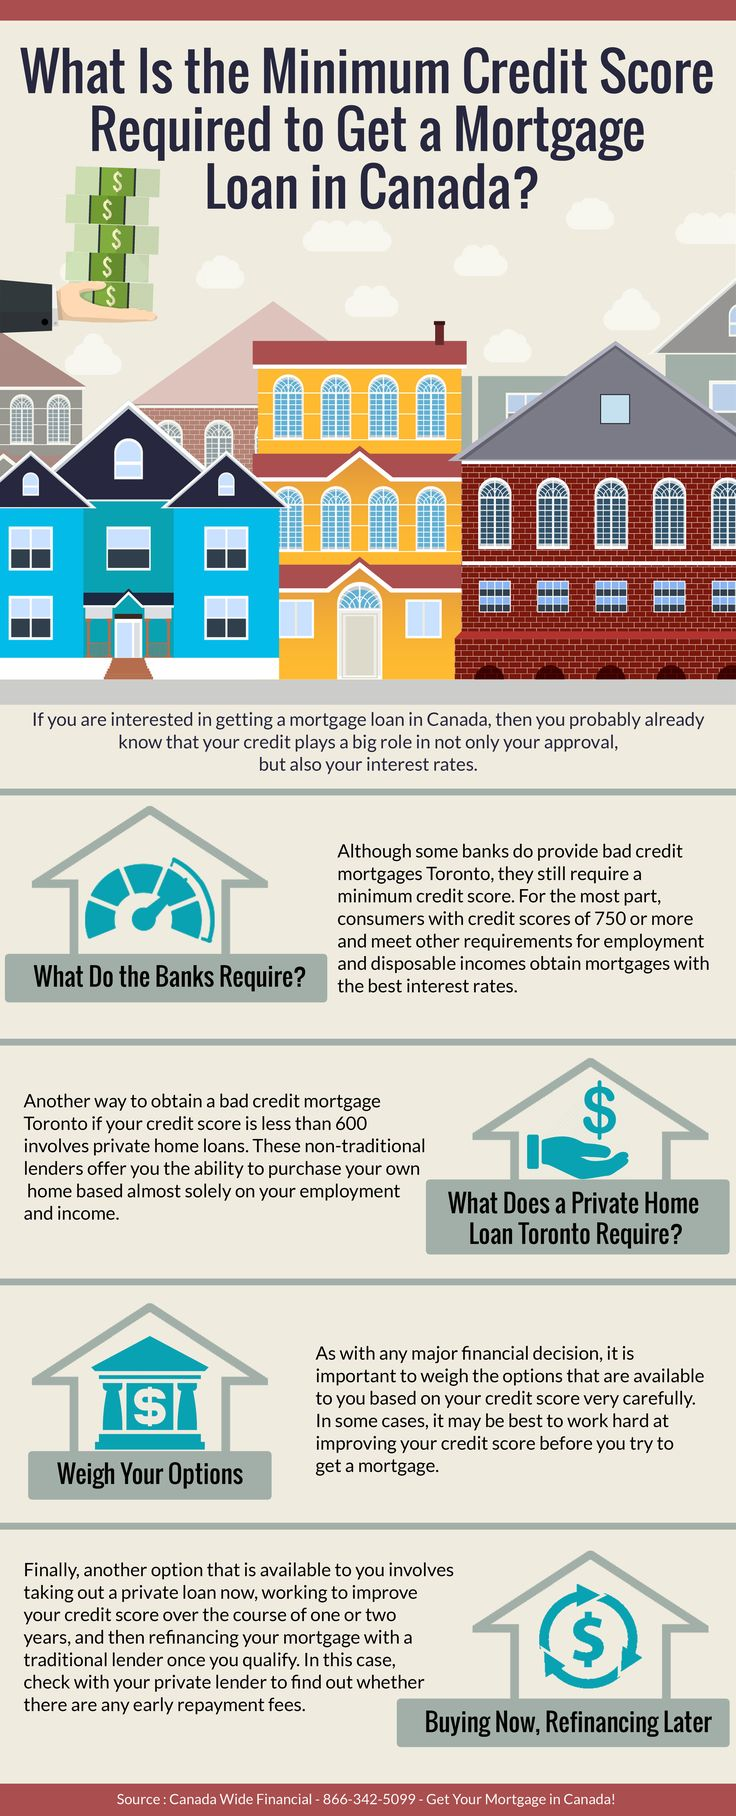 What Is the Minimum Credit Score Required to Get a Mortgage Loan in Canada?